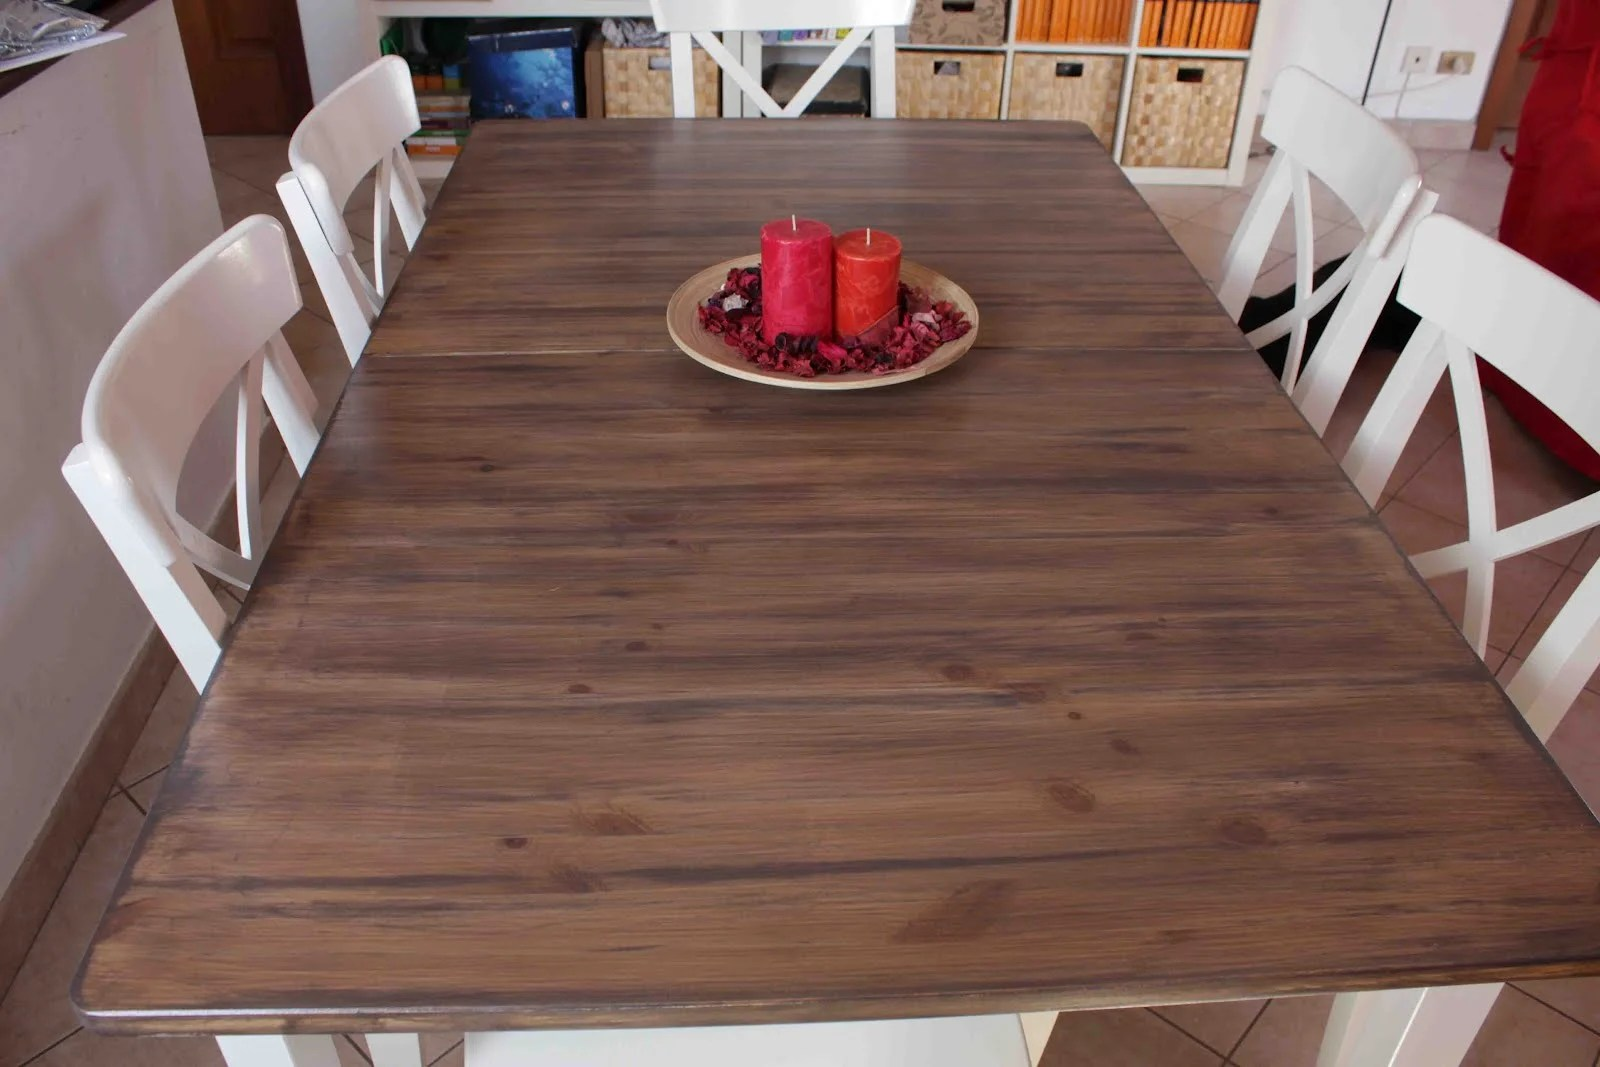 hack a country kitchen style dining table painting kitchen table Hack a country kitchen style dining table